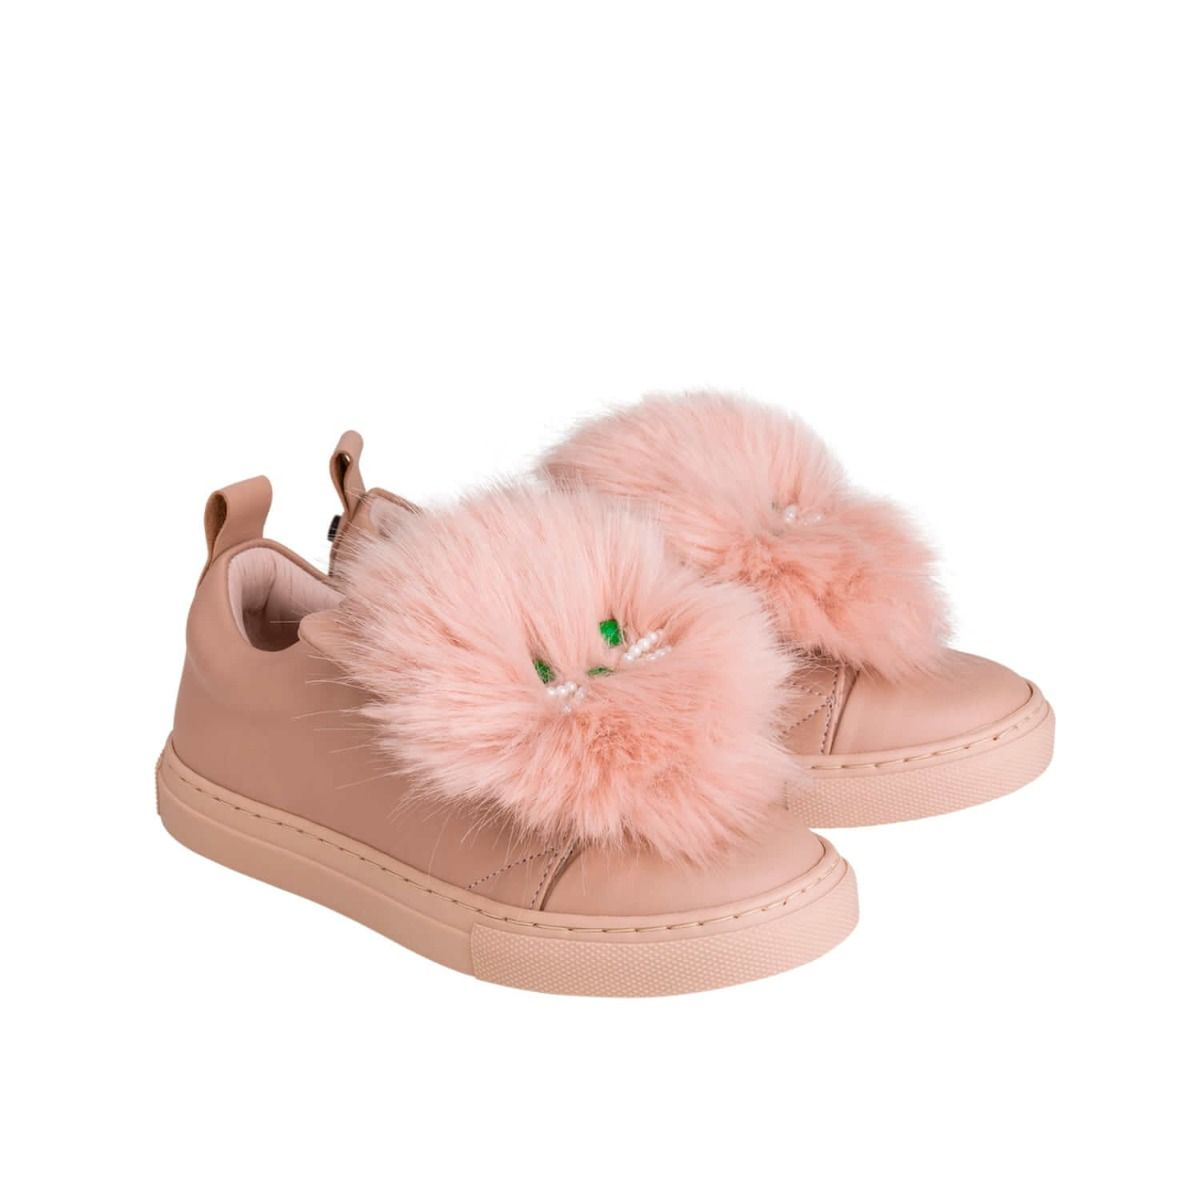 Baby and girl's sneakers in pale pink leather with light pink fur applique and cat face applique